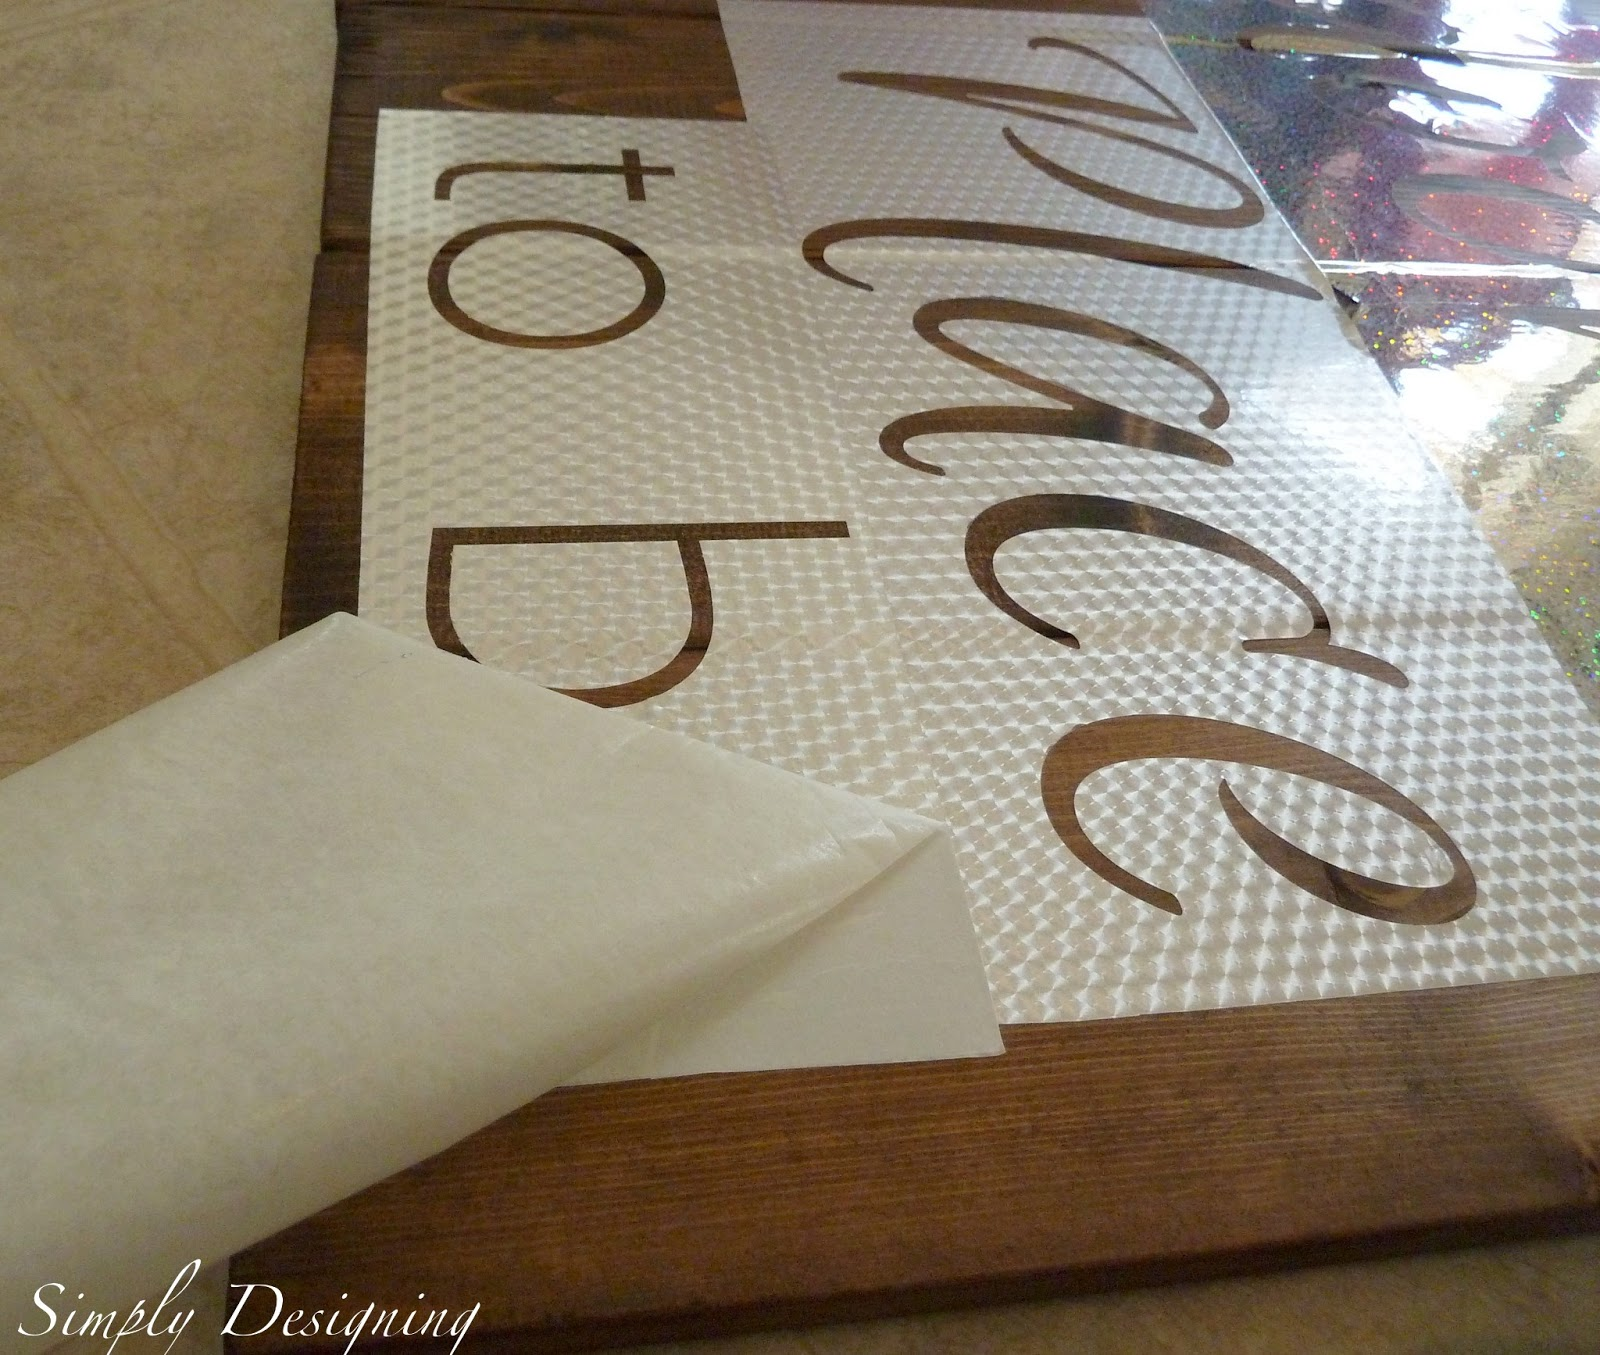 Making DIY signs from pallet wood is